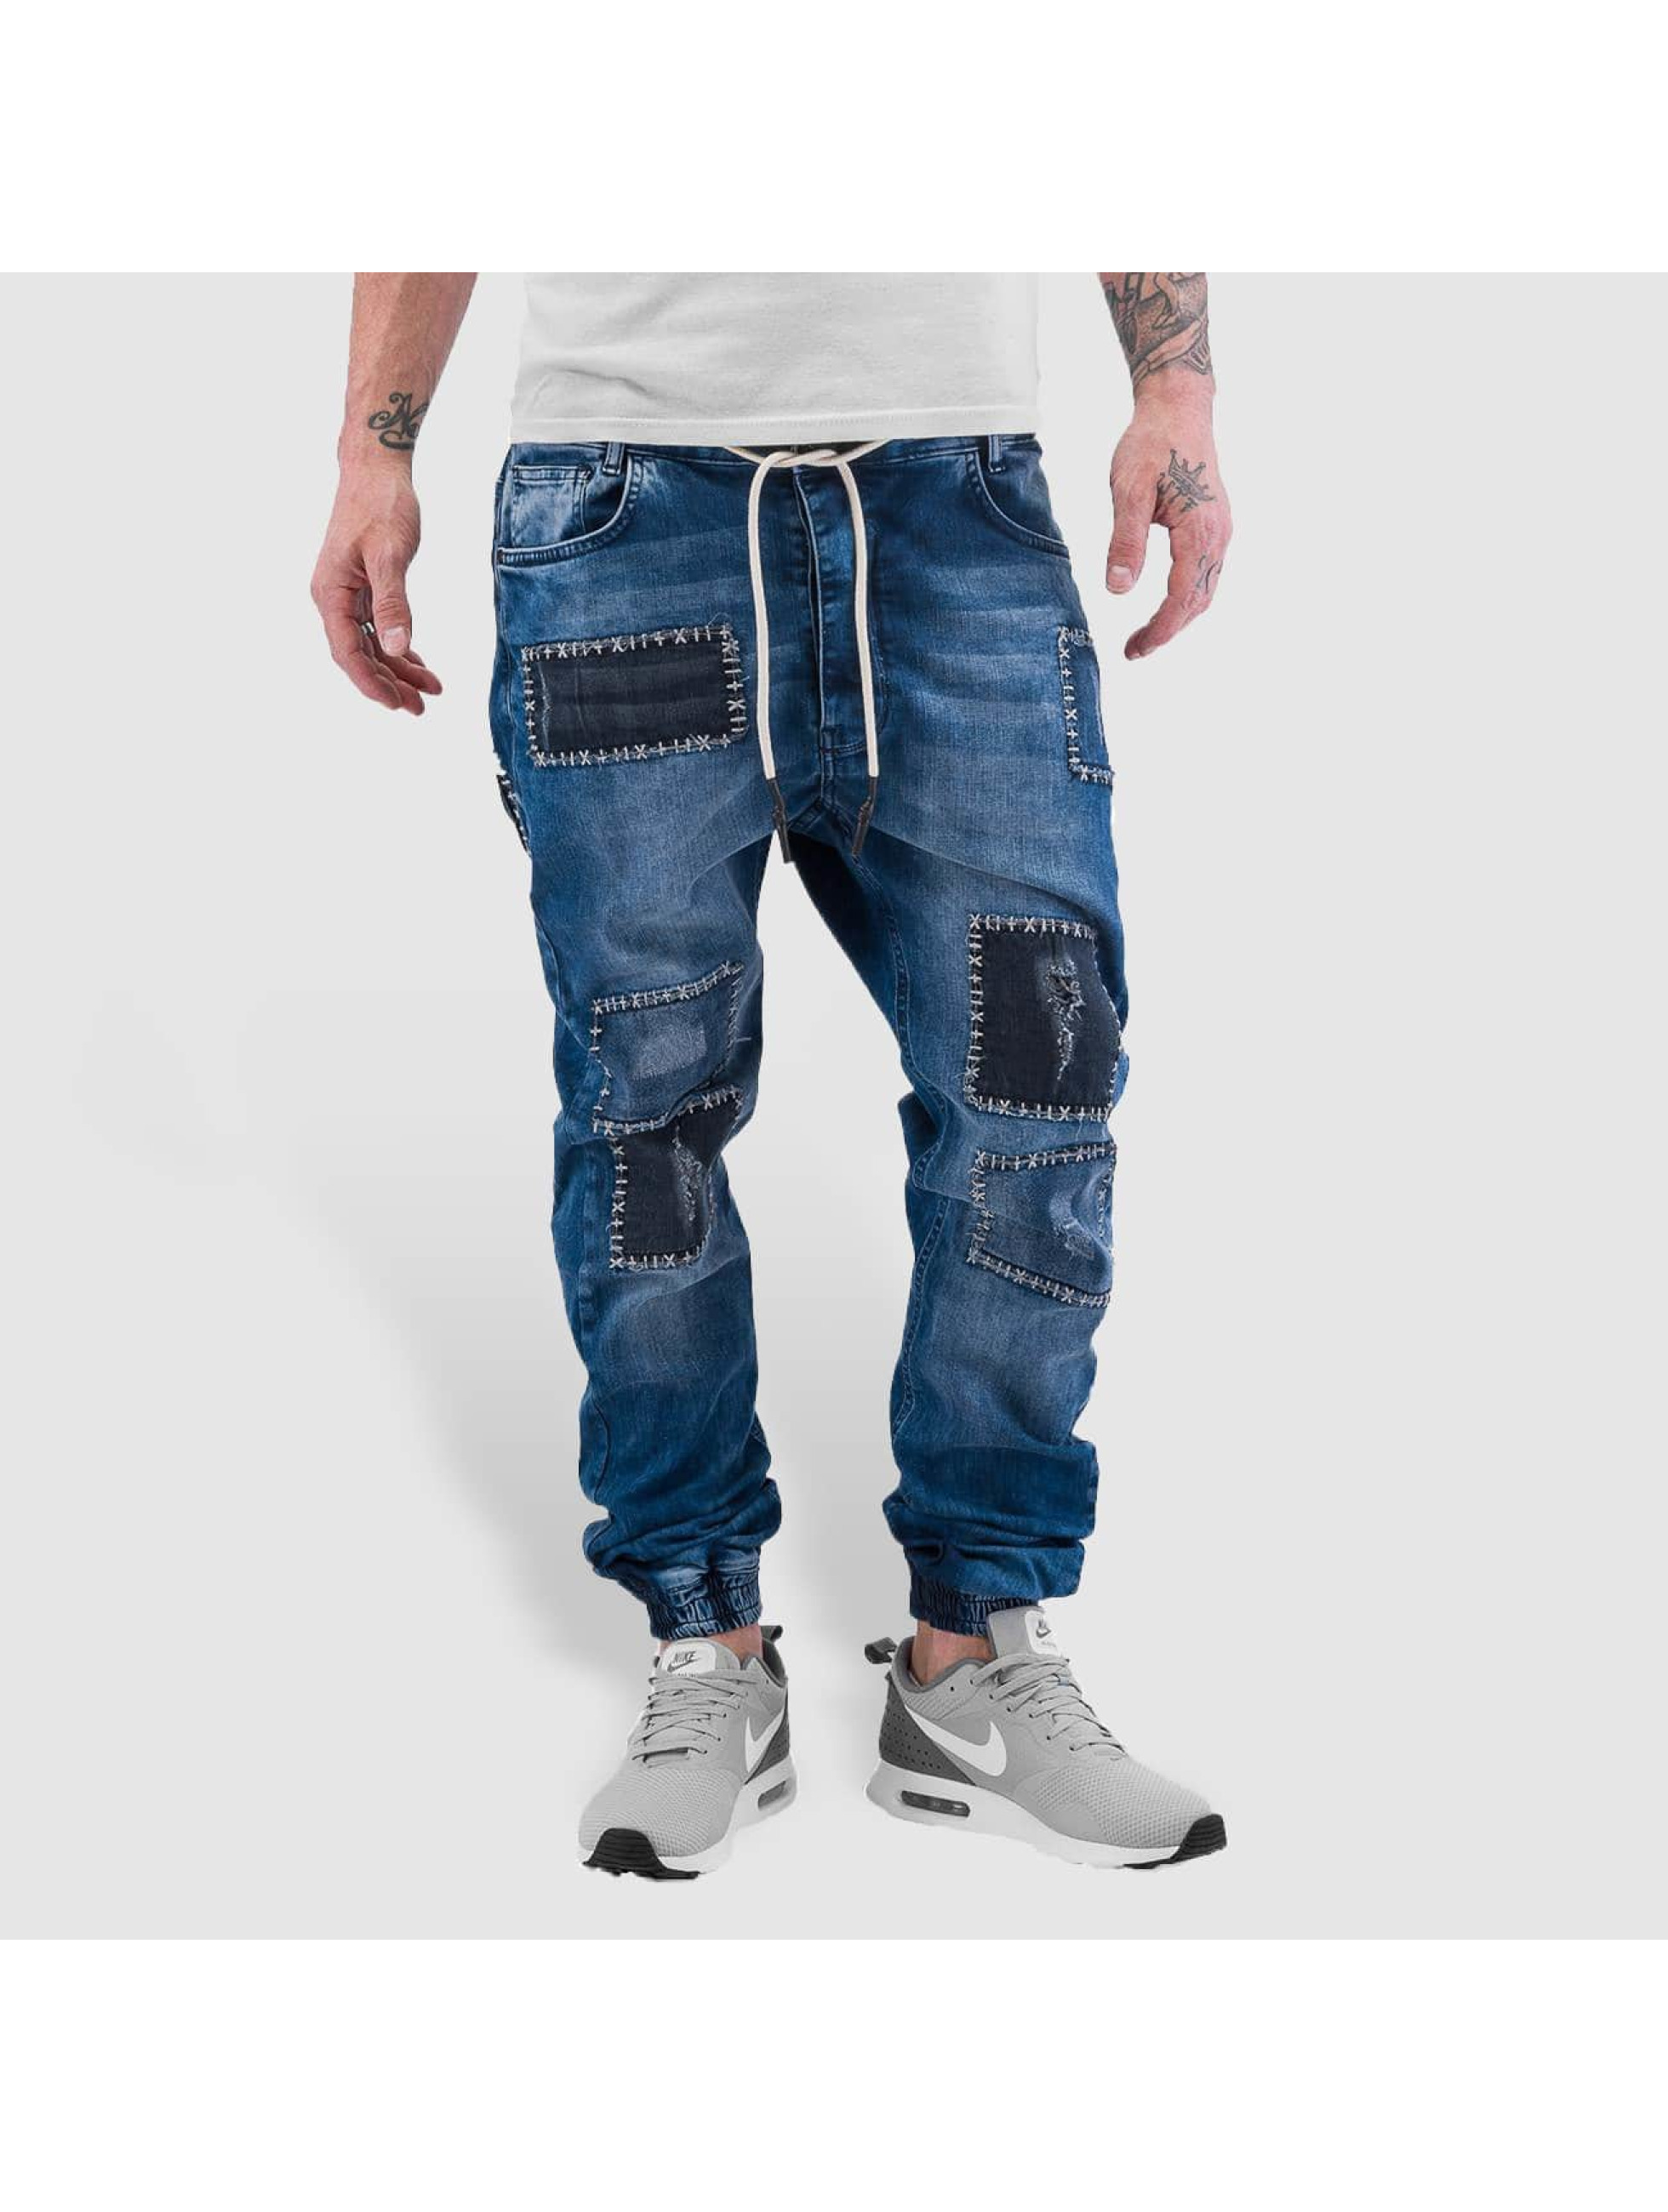 Groß Oßnig Angebote Just Rhyse Männer Straight Fit Jeans Patches in blau